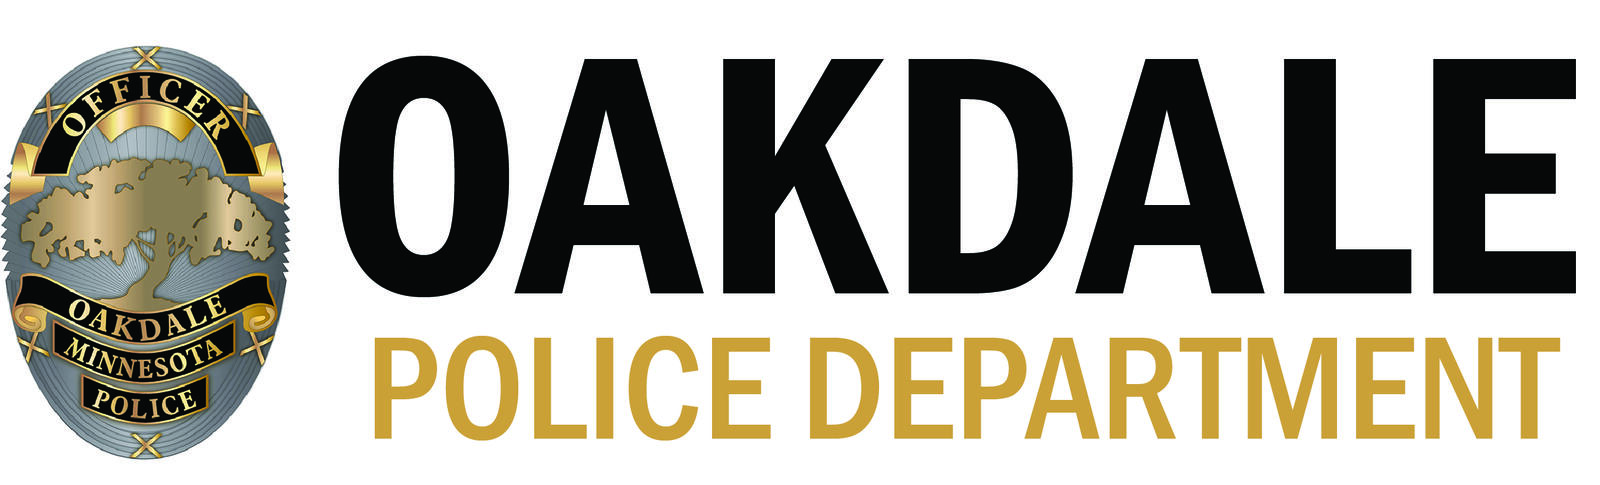 Oakdale Police Department - 61 Crime and Safety updates &mdash